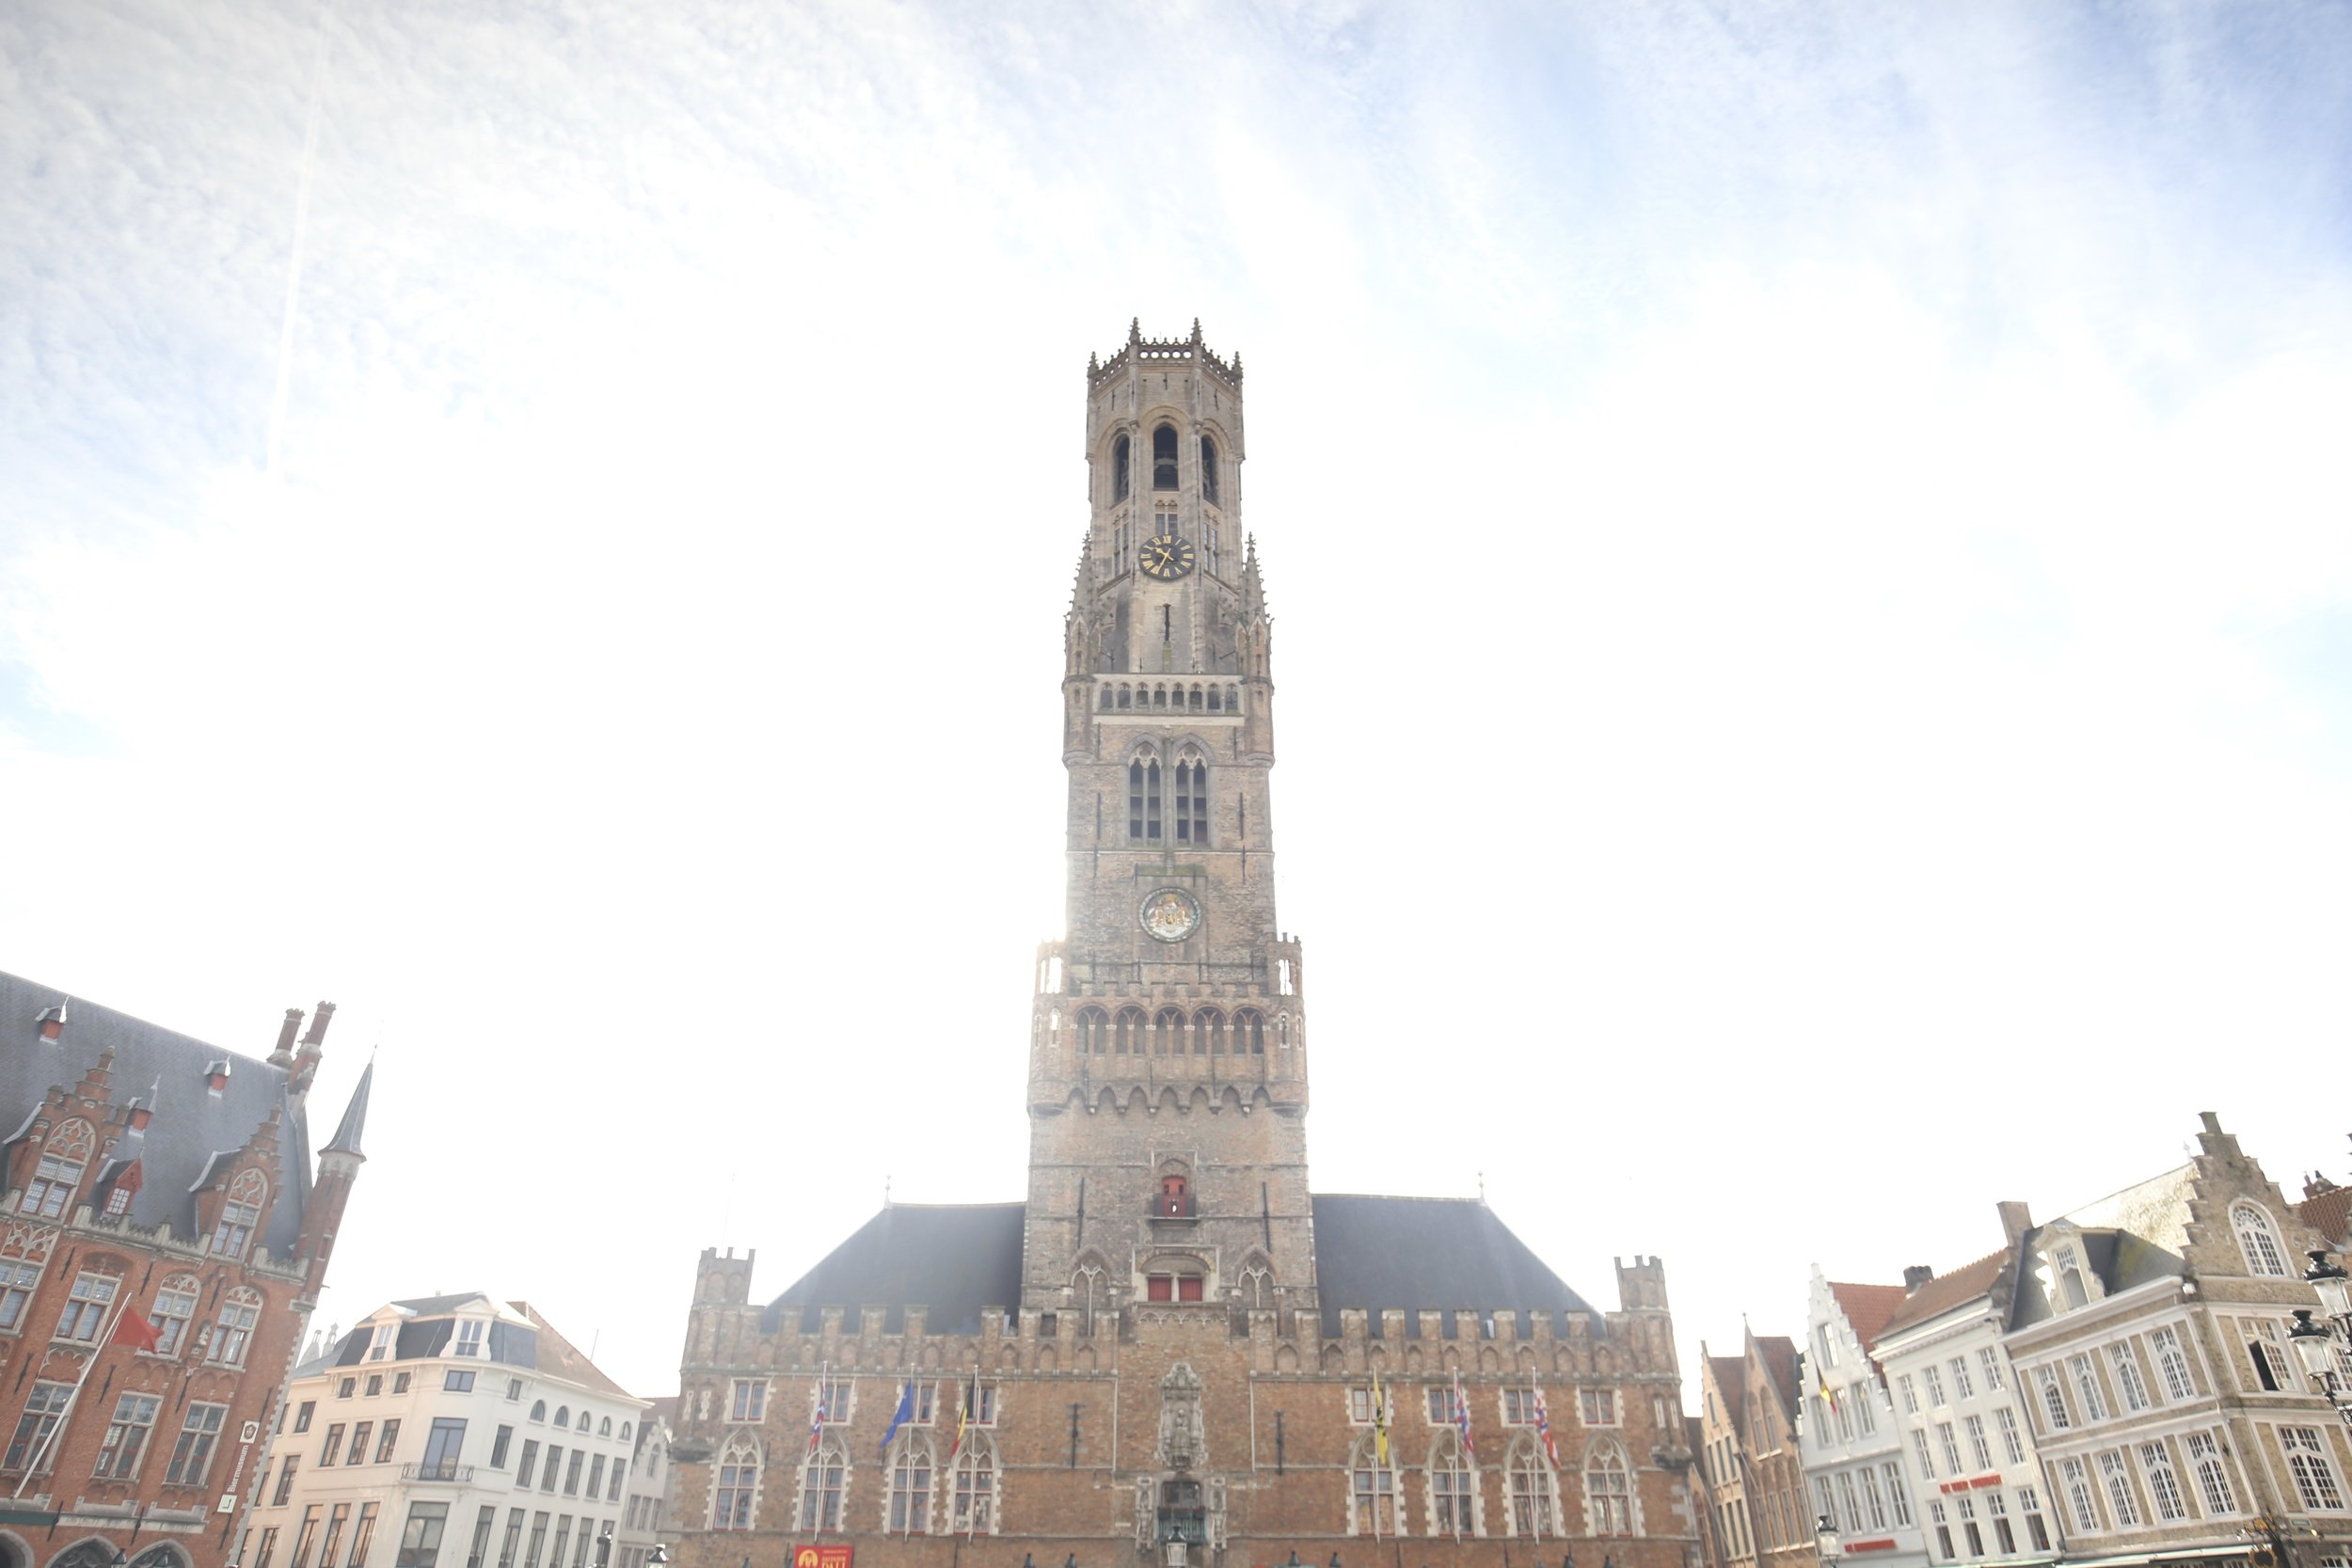 The tower of Bruges - sparkling in the sun.